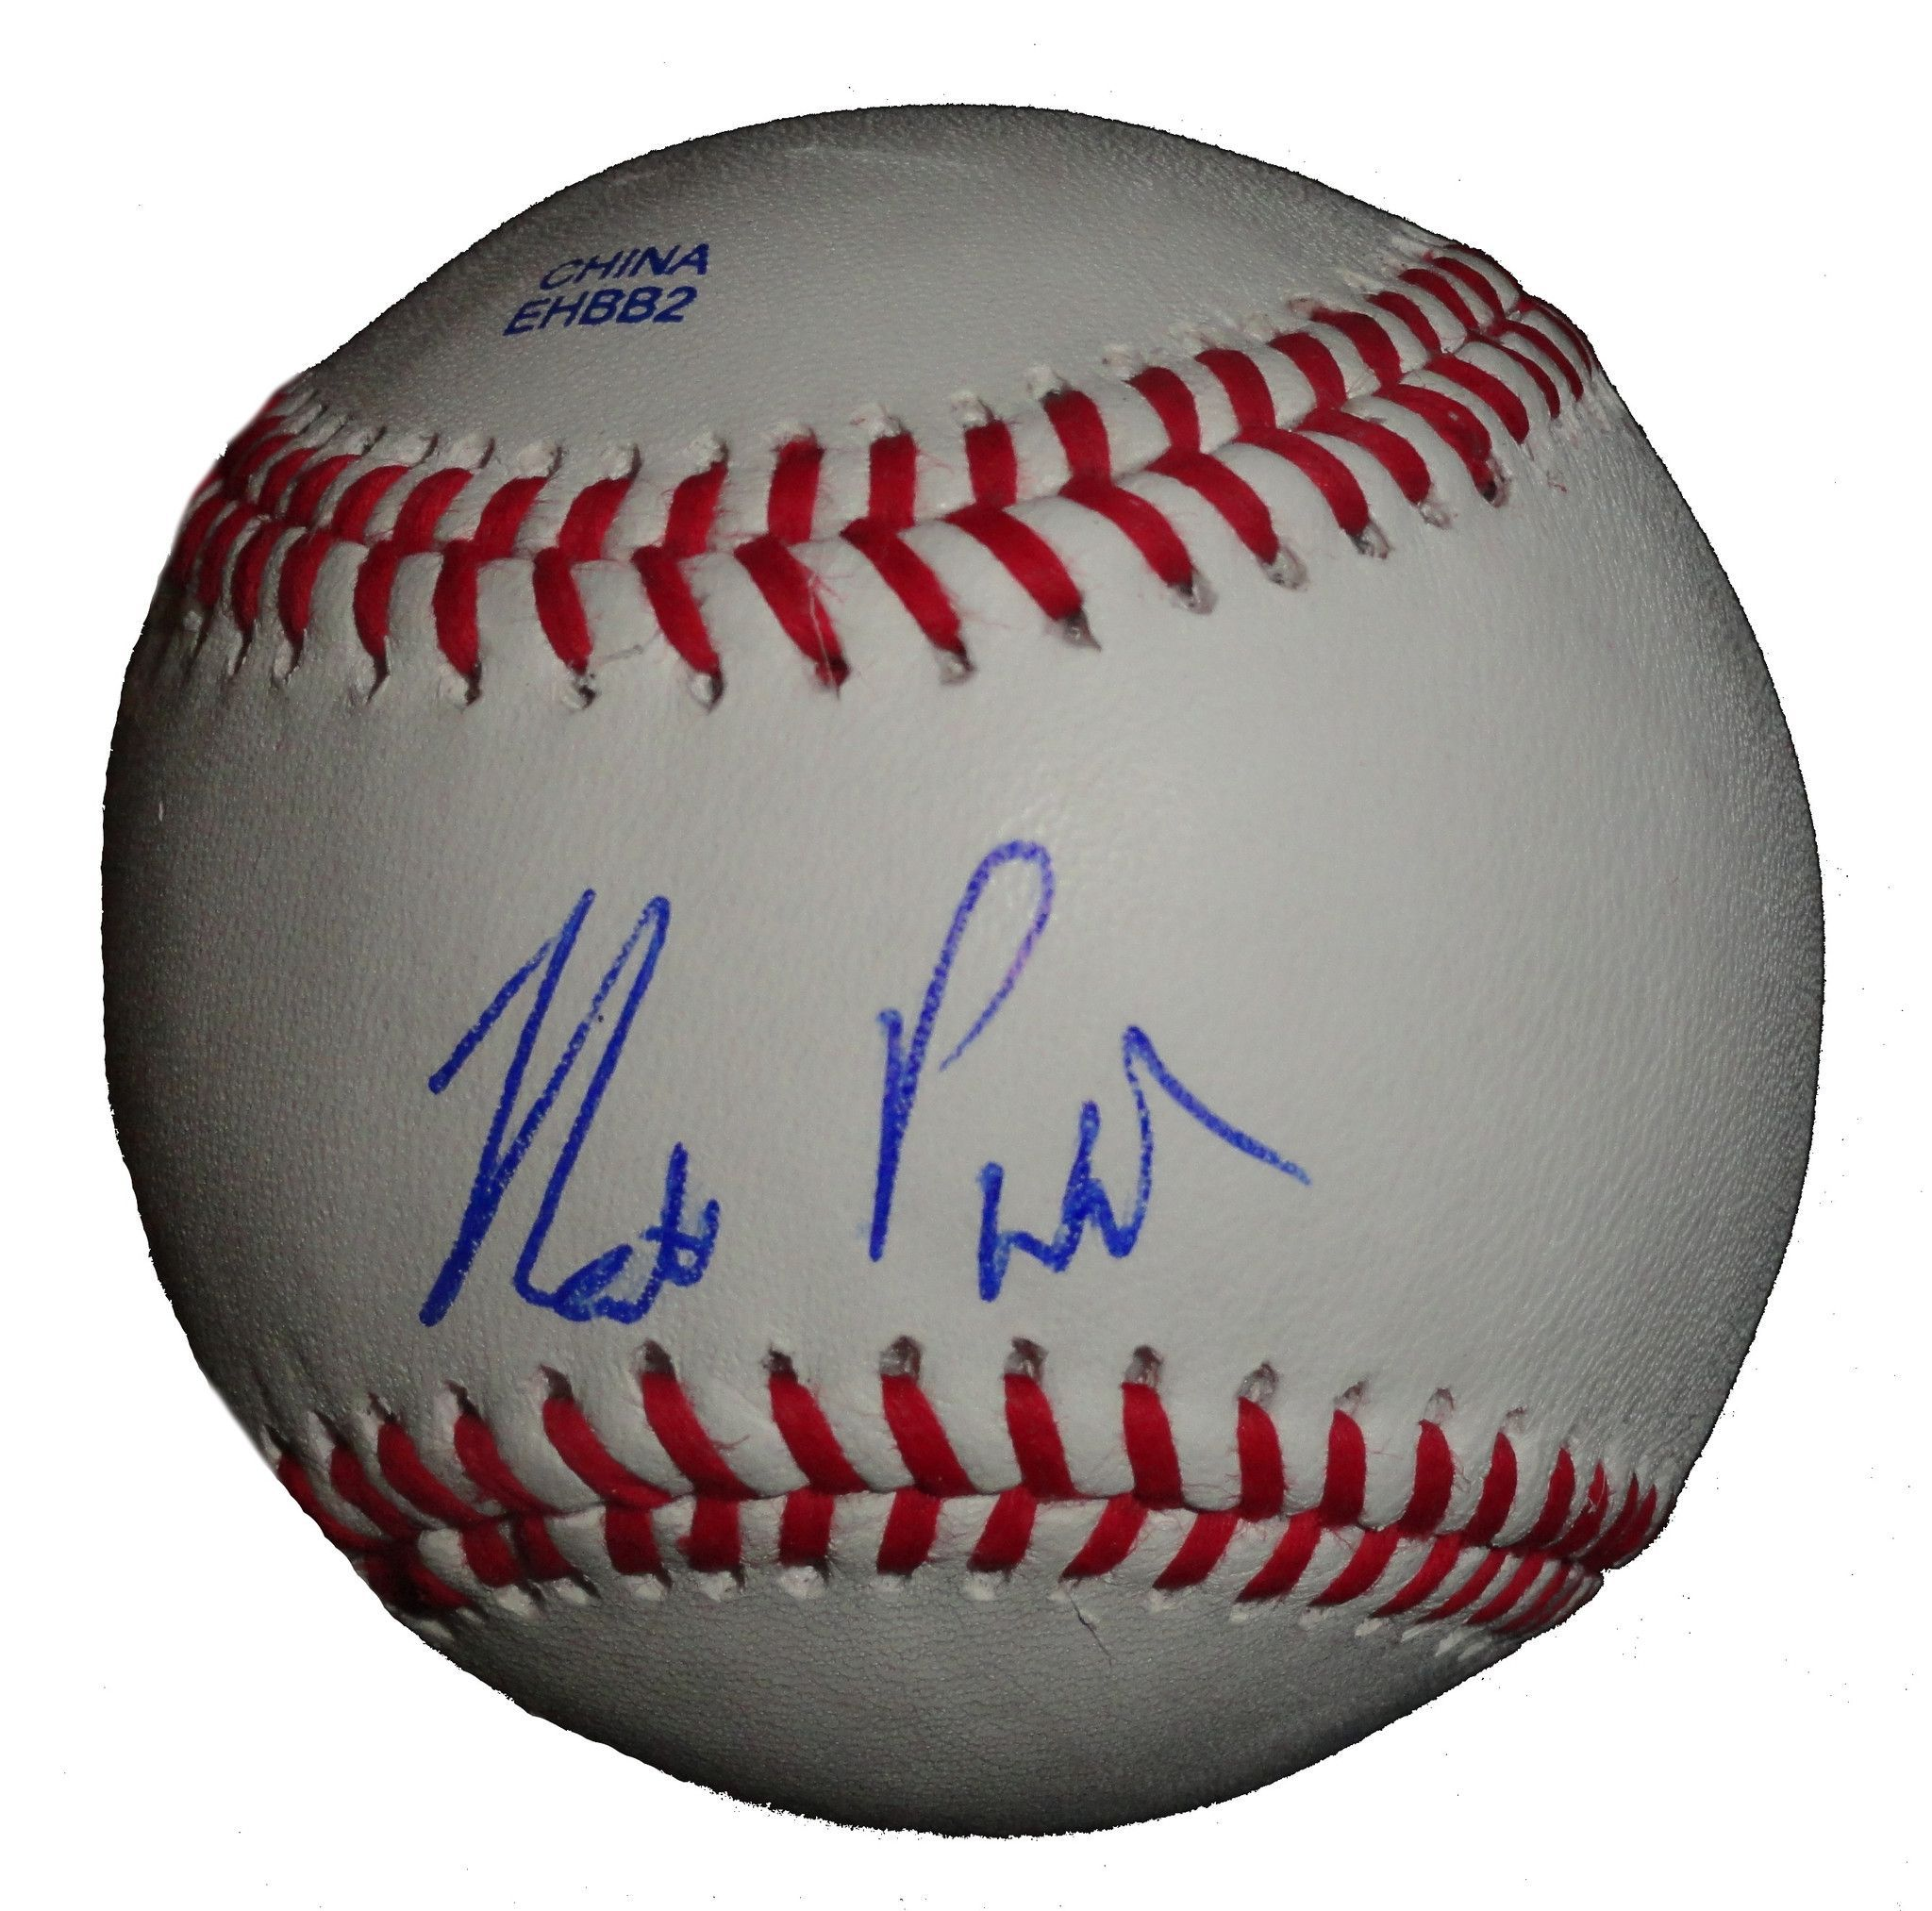 Washington Nationals Matt Purke signed Rawlings ROLB leather baseball w/ proof photo.  Proof photo of Matt signing will be included with your purchase along with a COA issued from Southwestconnection-Memorabilia, guaranteeing the item to pass authentication services from PSA/DNA or JSA. Free USPS shipping. www.AutographedwithProof.com is your one stop for autographed collectibles from Washington DC Sports teams. Check back with us often, as we are always obtaining new items.